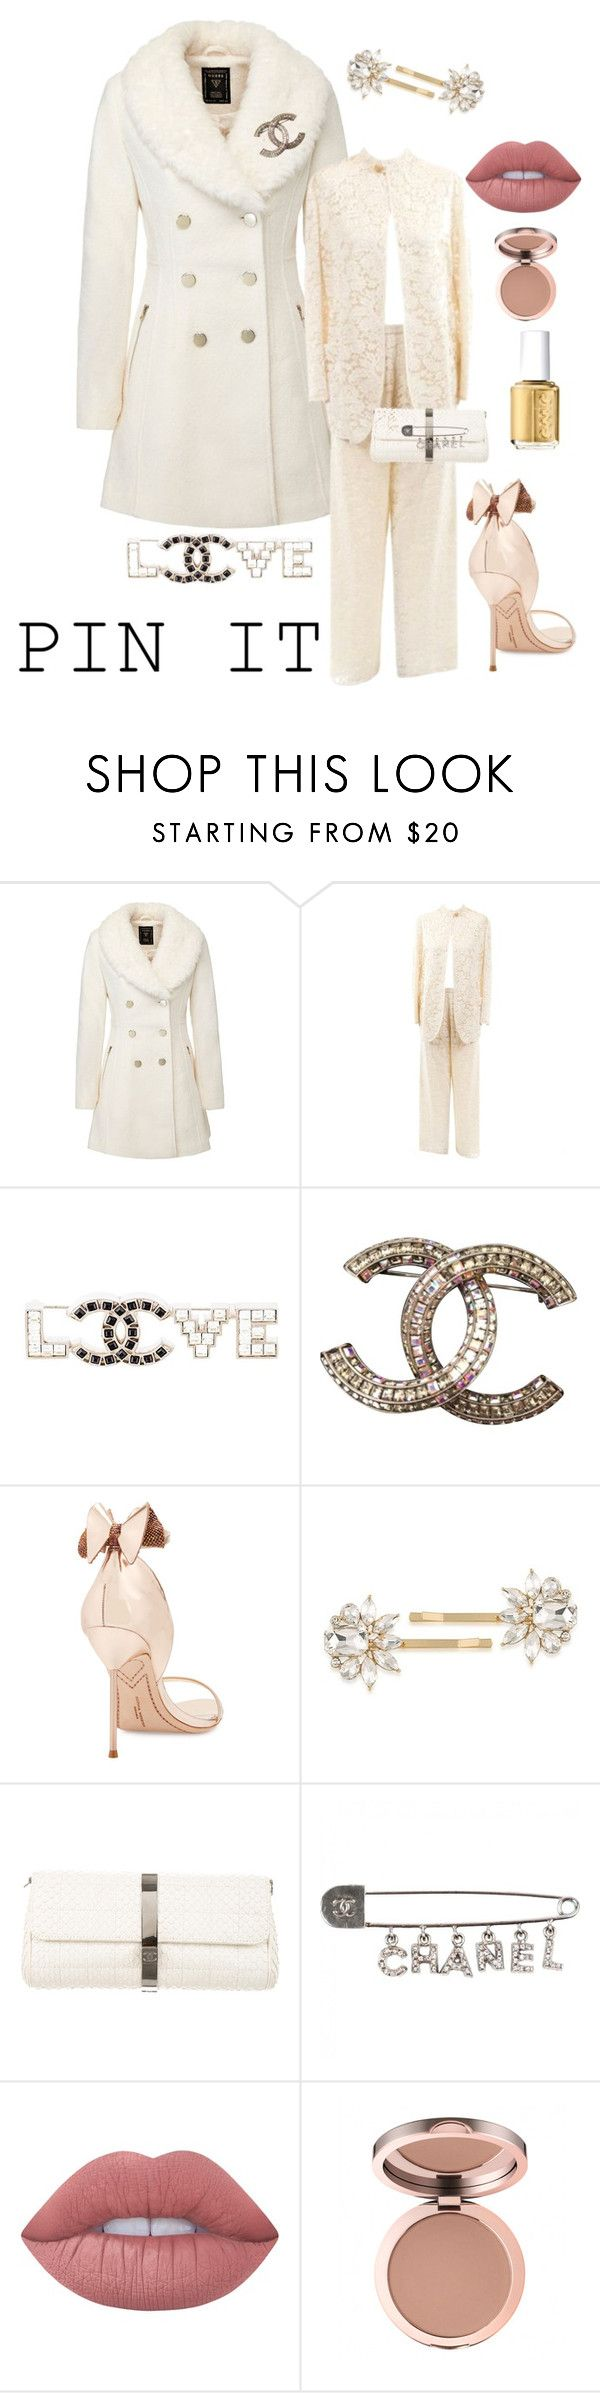 """Accessorize with PINS!"" by kotnourka ❤ liked on Polyvore featuring Giorgio Armani, Chanel, Sophia Webster, Trina Turk, Lime Crime and Essie"